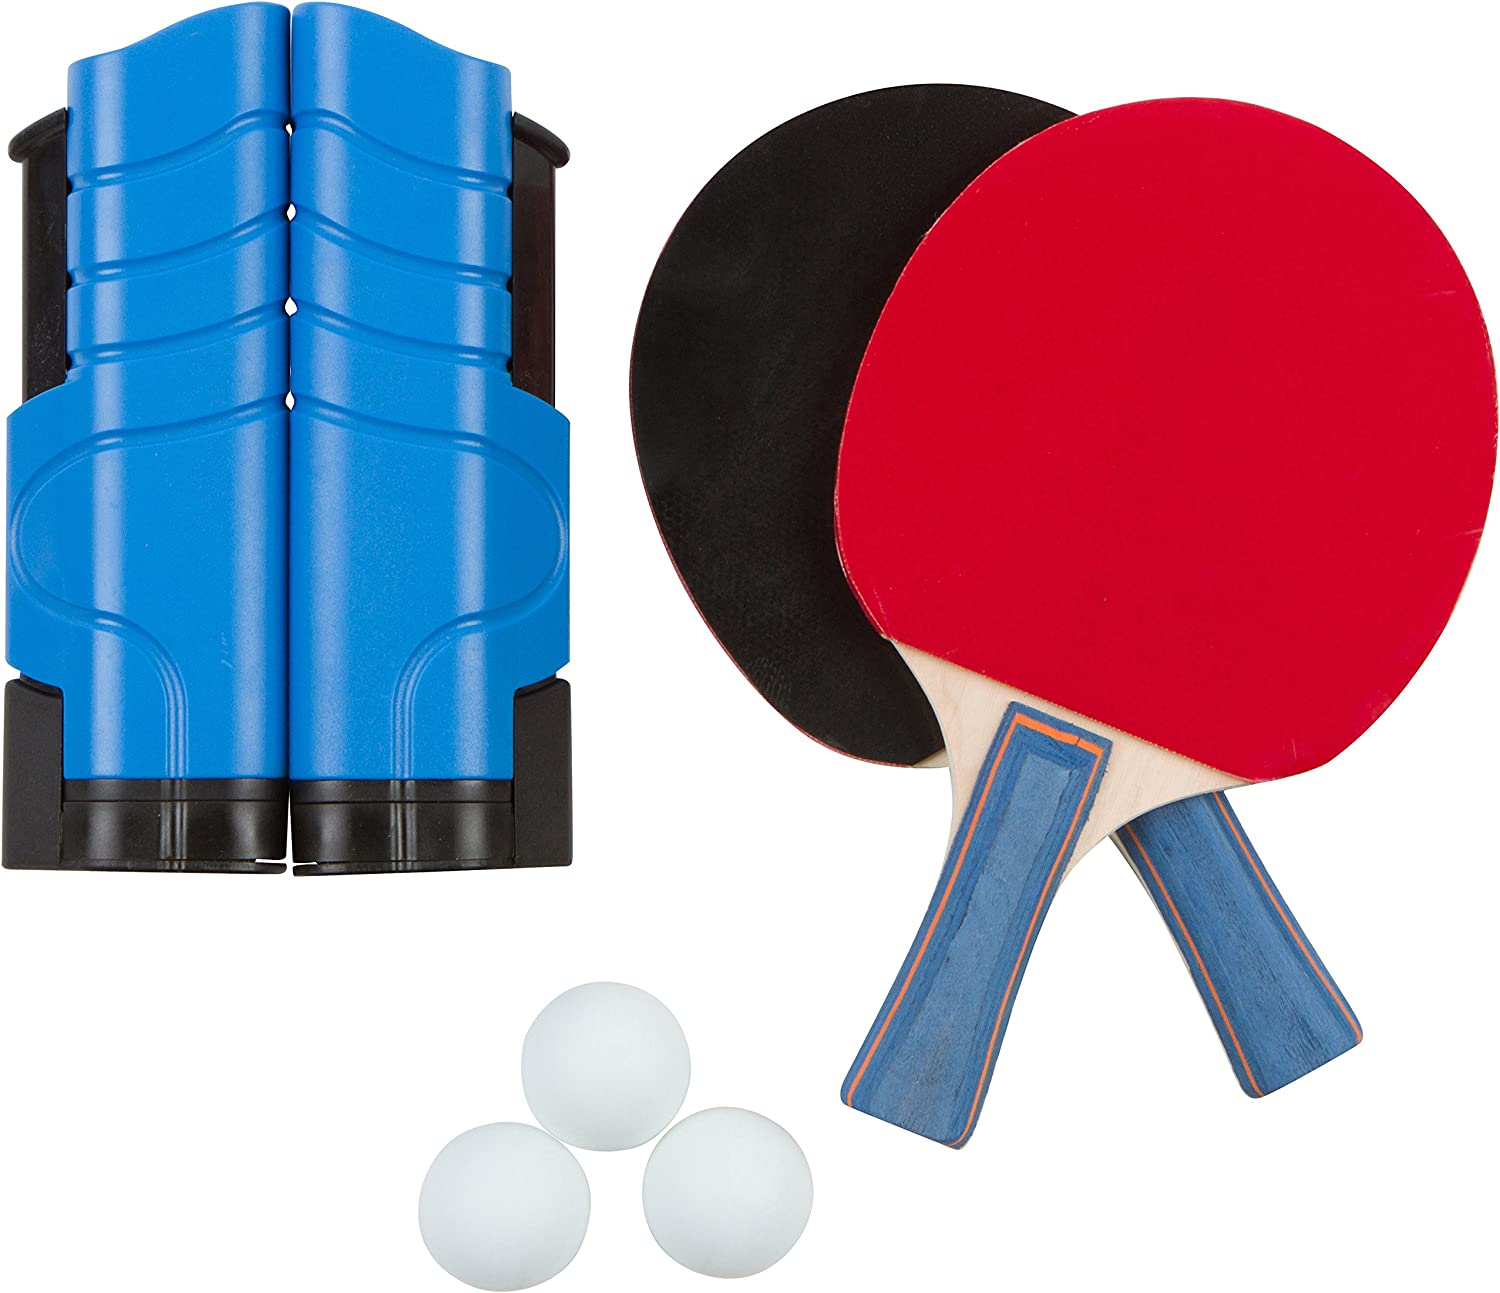 Trademark Innovations Anywhere Table Tennis Set with Paddles and Balls